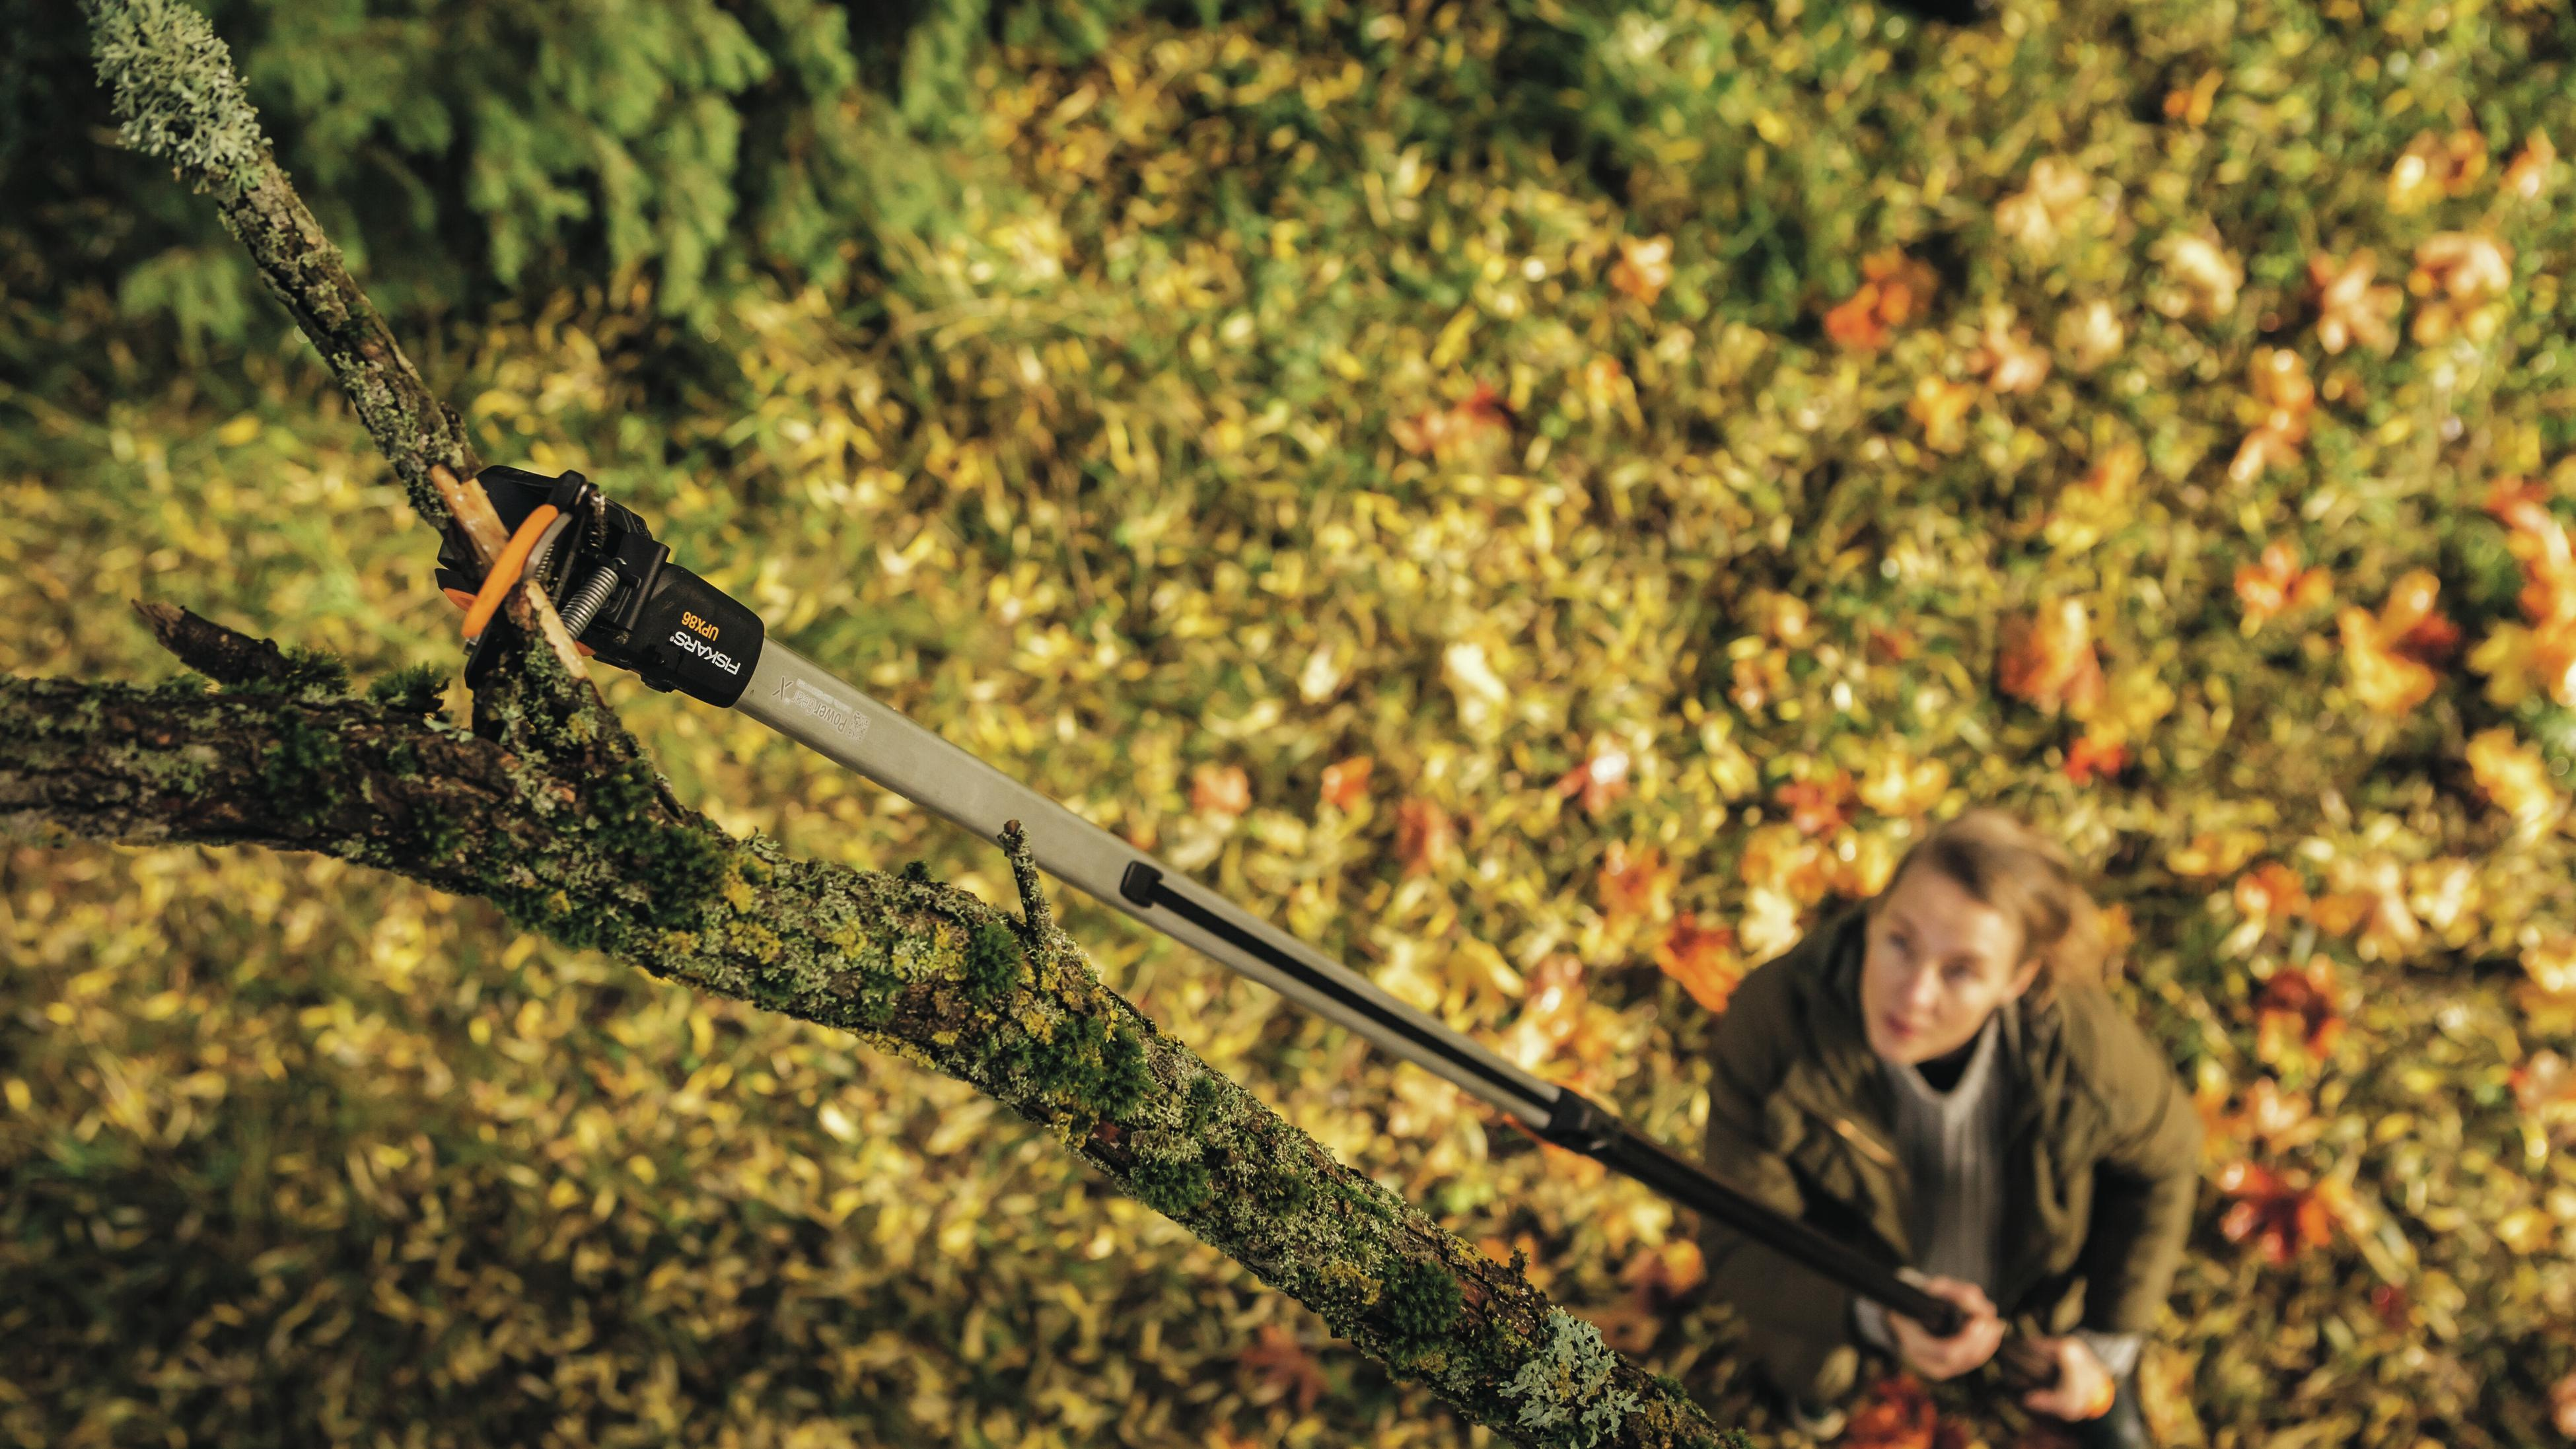 A woman using a tree pruner to cut off a brand.